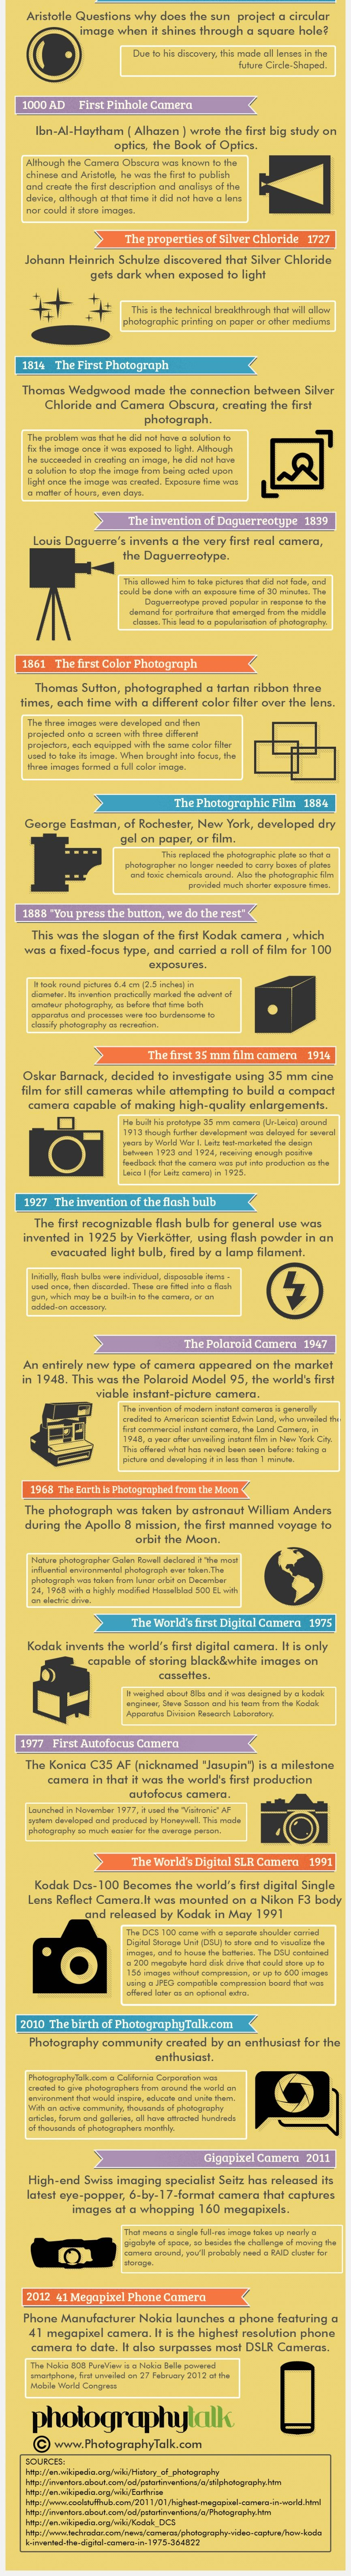 evolution of photogaphy infographic04 image